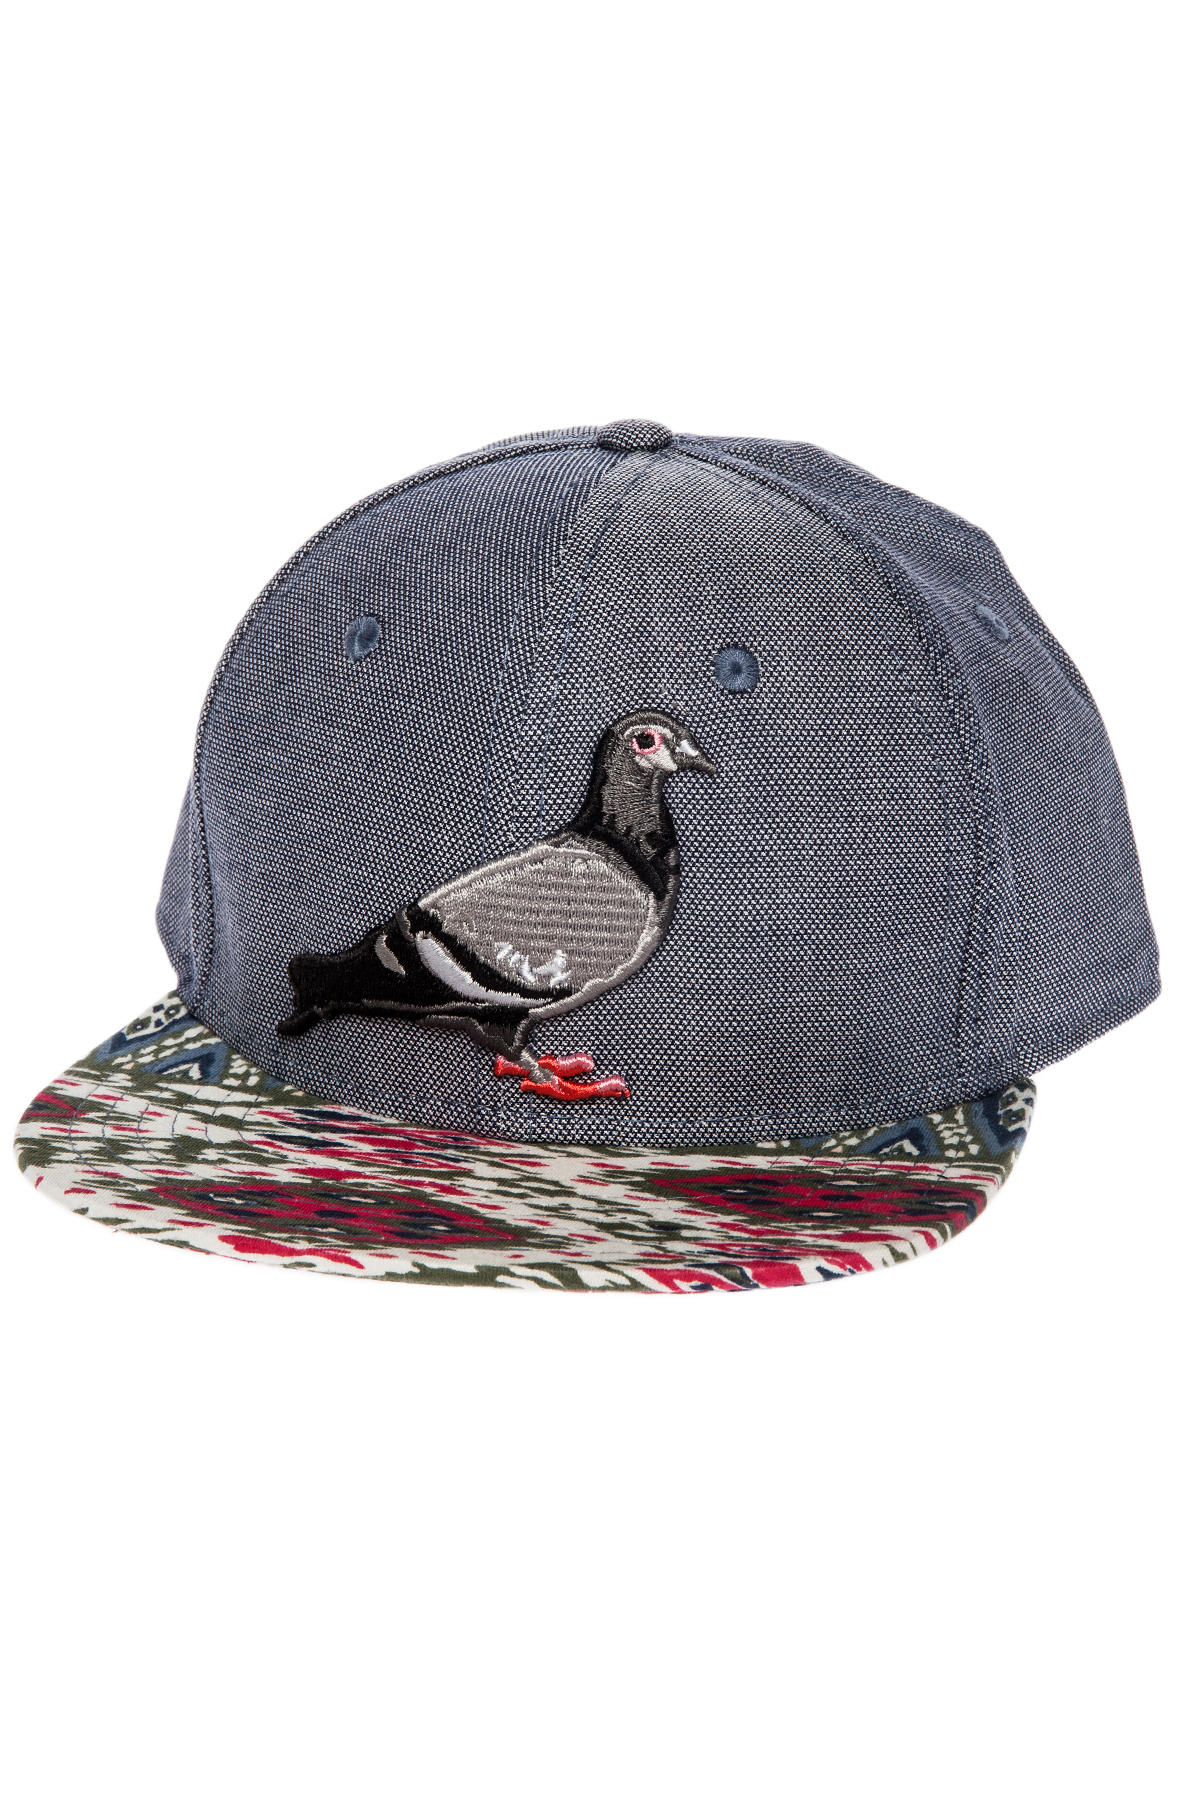 b577ed9fa2d29 Lyst - Staple The Asante Pigeon Snapback Hat in Blue for Men